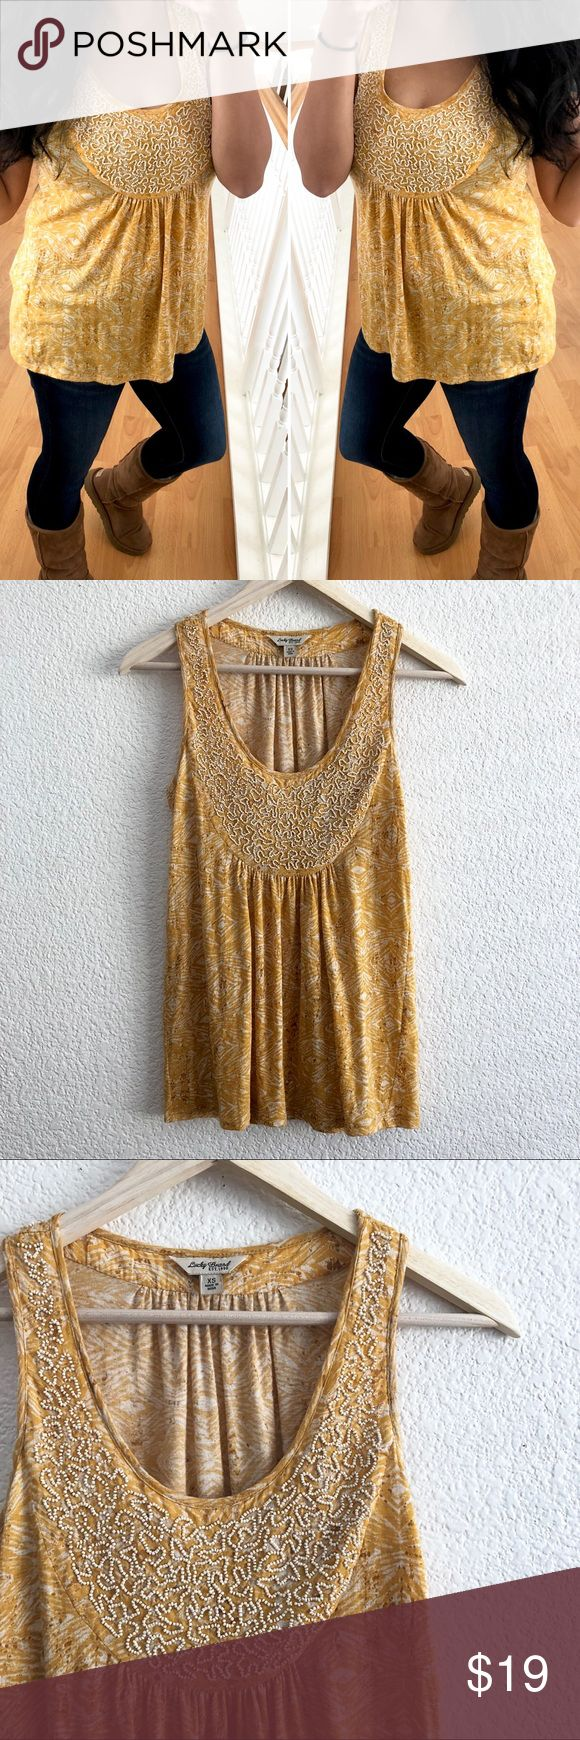 """Lucky Brand Beaded Sleeveless Blouse - Yellow Pit to pit: 16"""" Top to bottom: 26""""  Sleeveless blouse with pearl-white beaded collar design. All beads in-tacked and in great condition!   Honey mustard color with splashes of white and a darker, almost brown color.   Diamond design.   Size says XS but fits me just fine and I usually wear a size medium. I think it's more of a loose-fitting top. Lucky Brand Tops Blouses"""